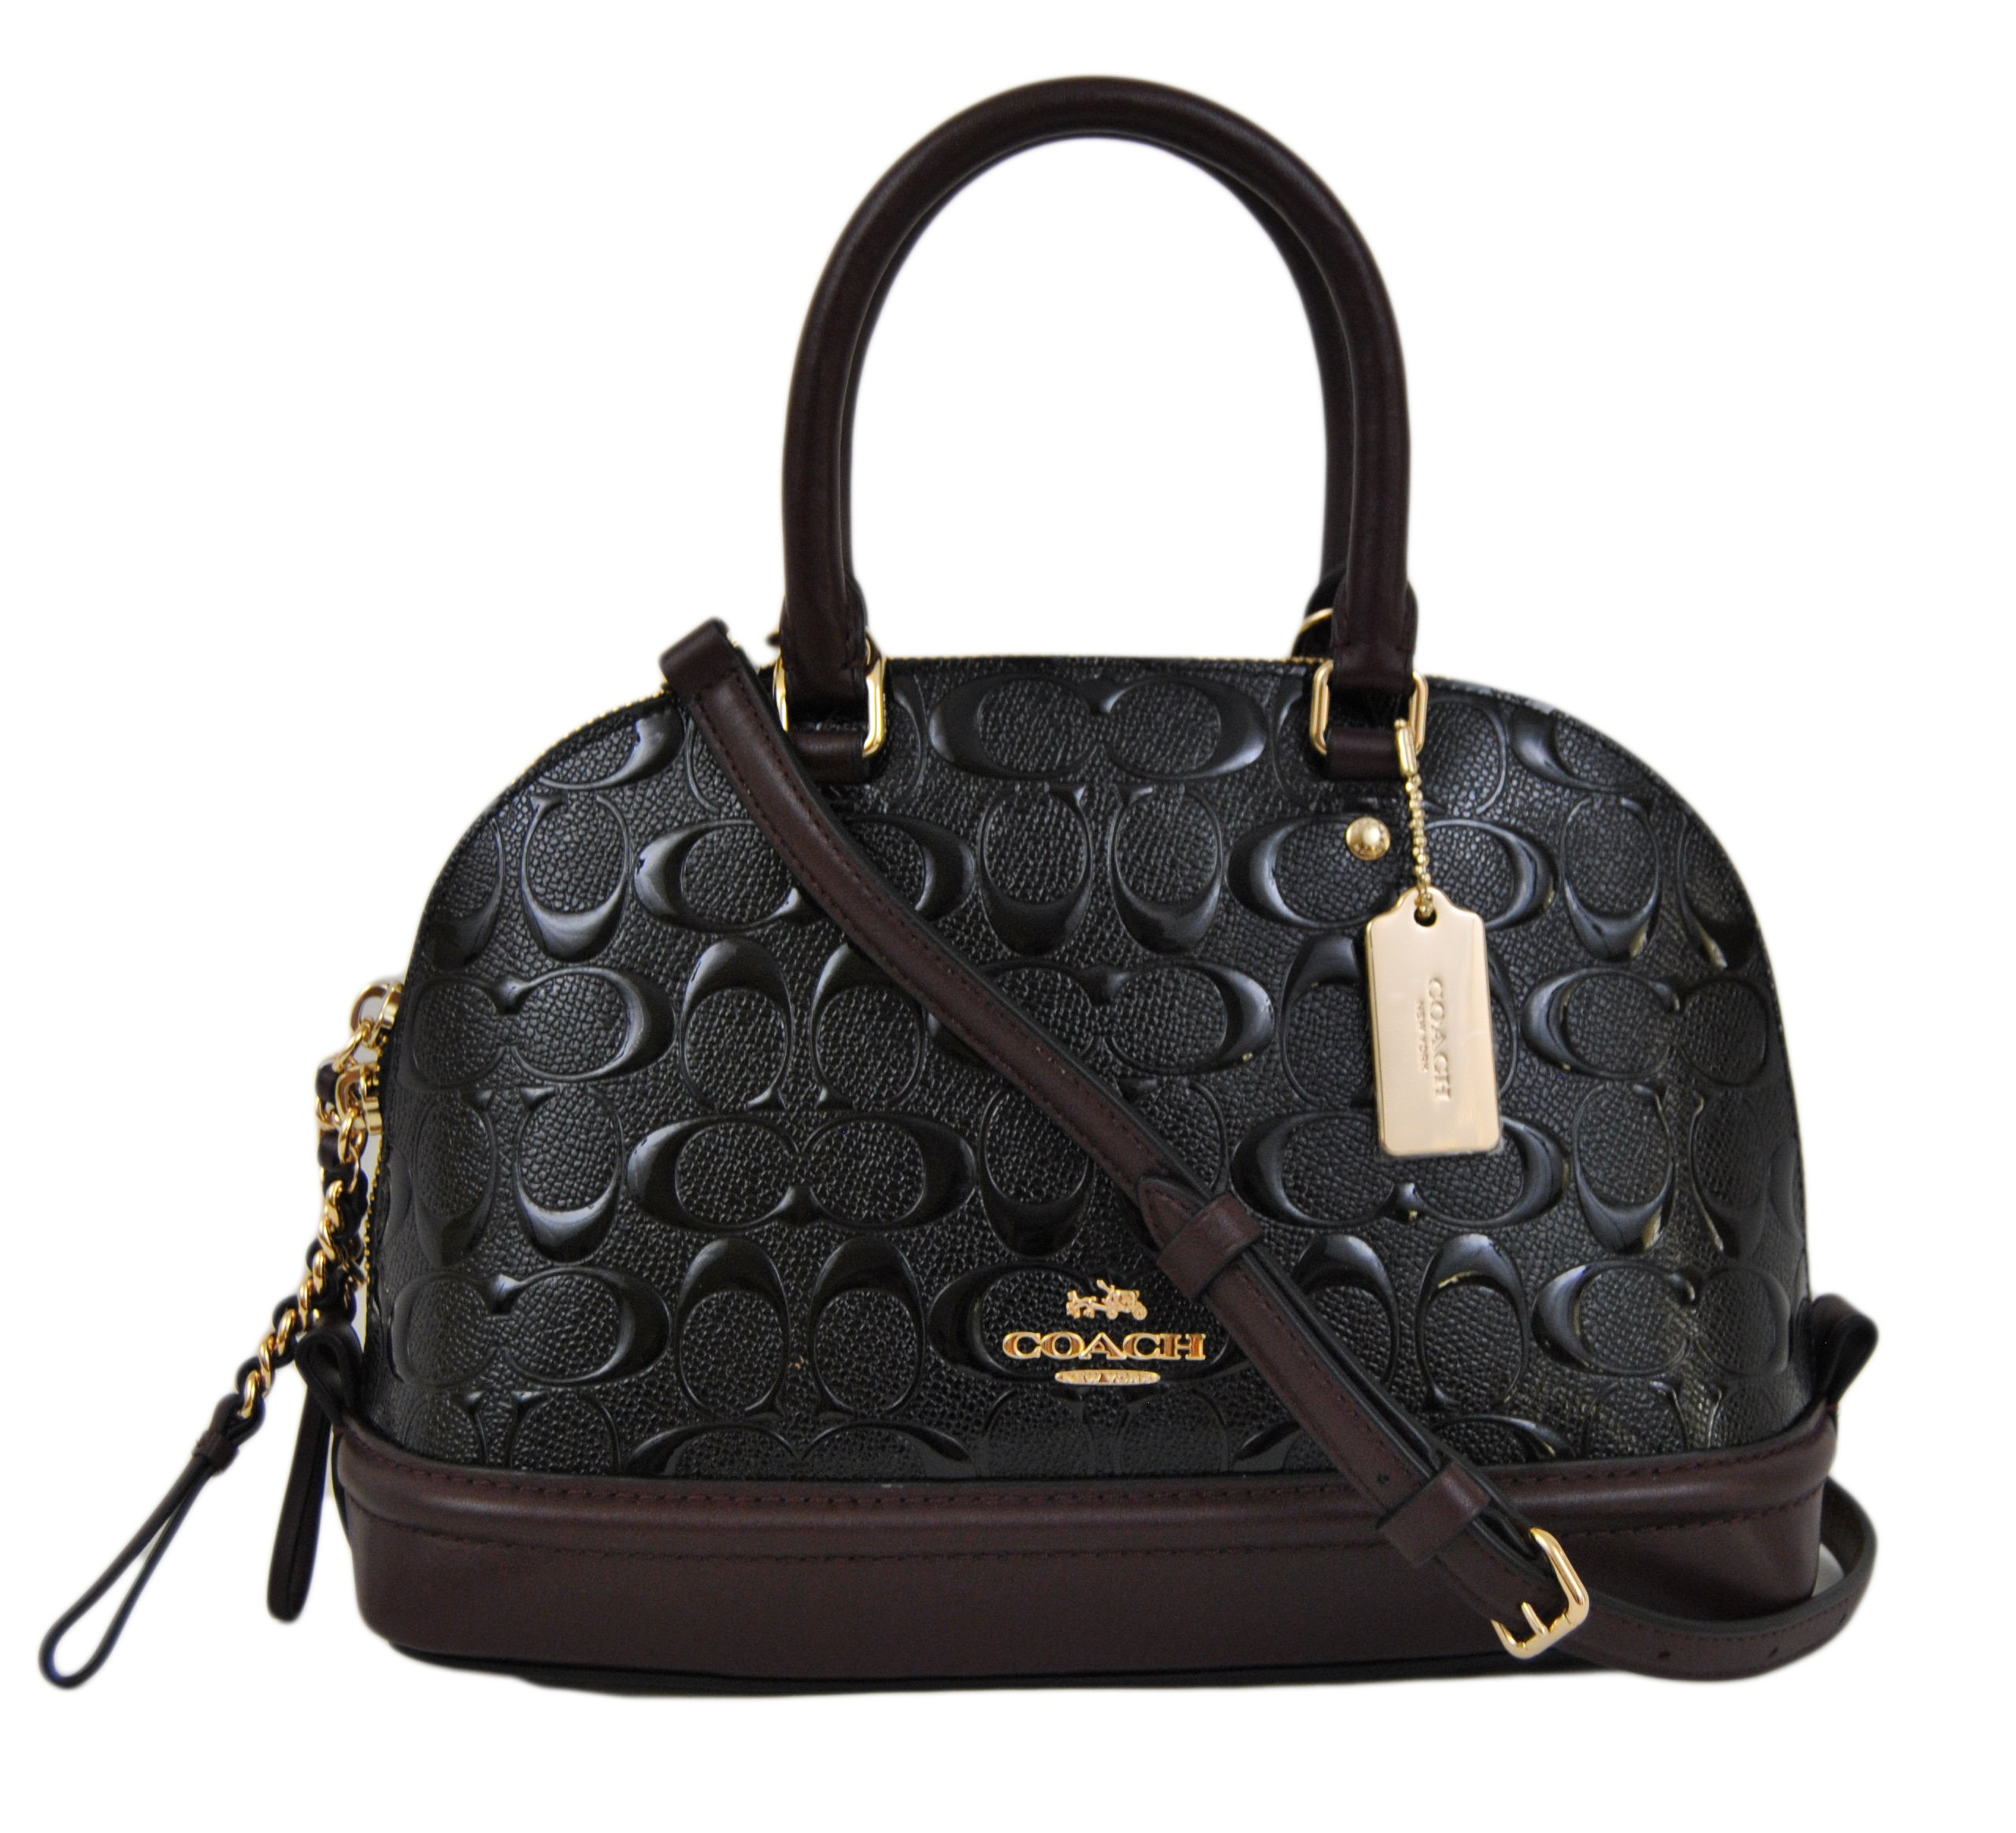 Coach Signature Debossed Patent Leather Mini Sierra Satchel, F55450 (Black, Oxblood) by Coach